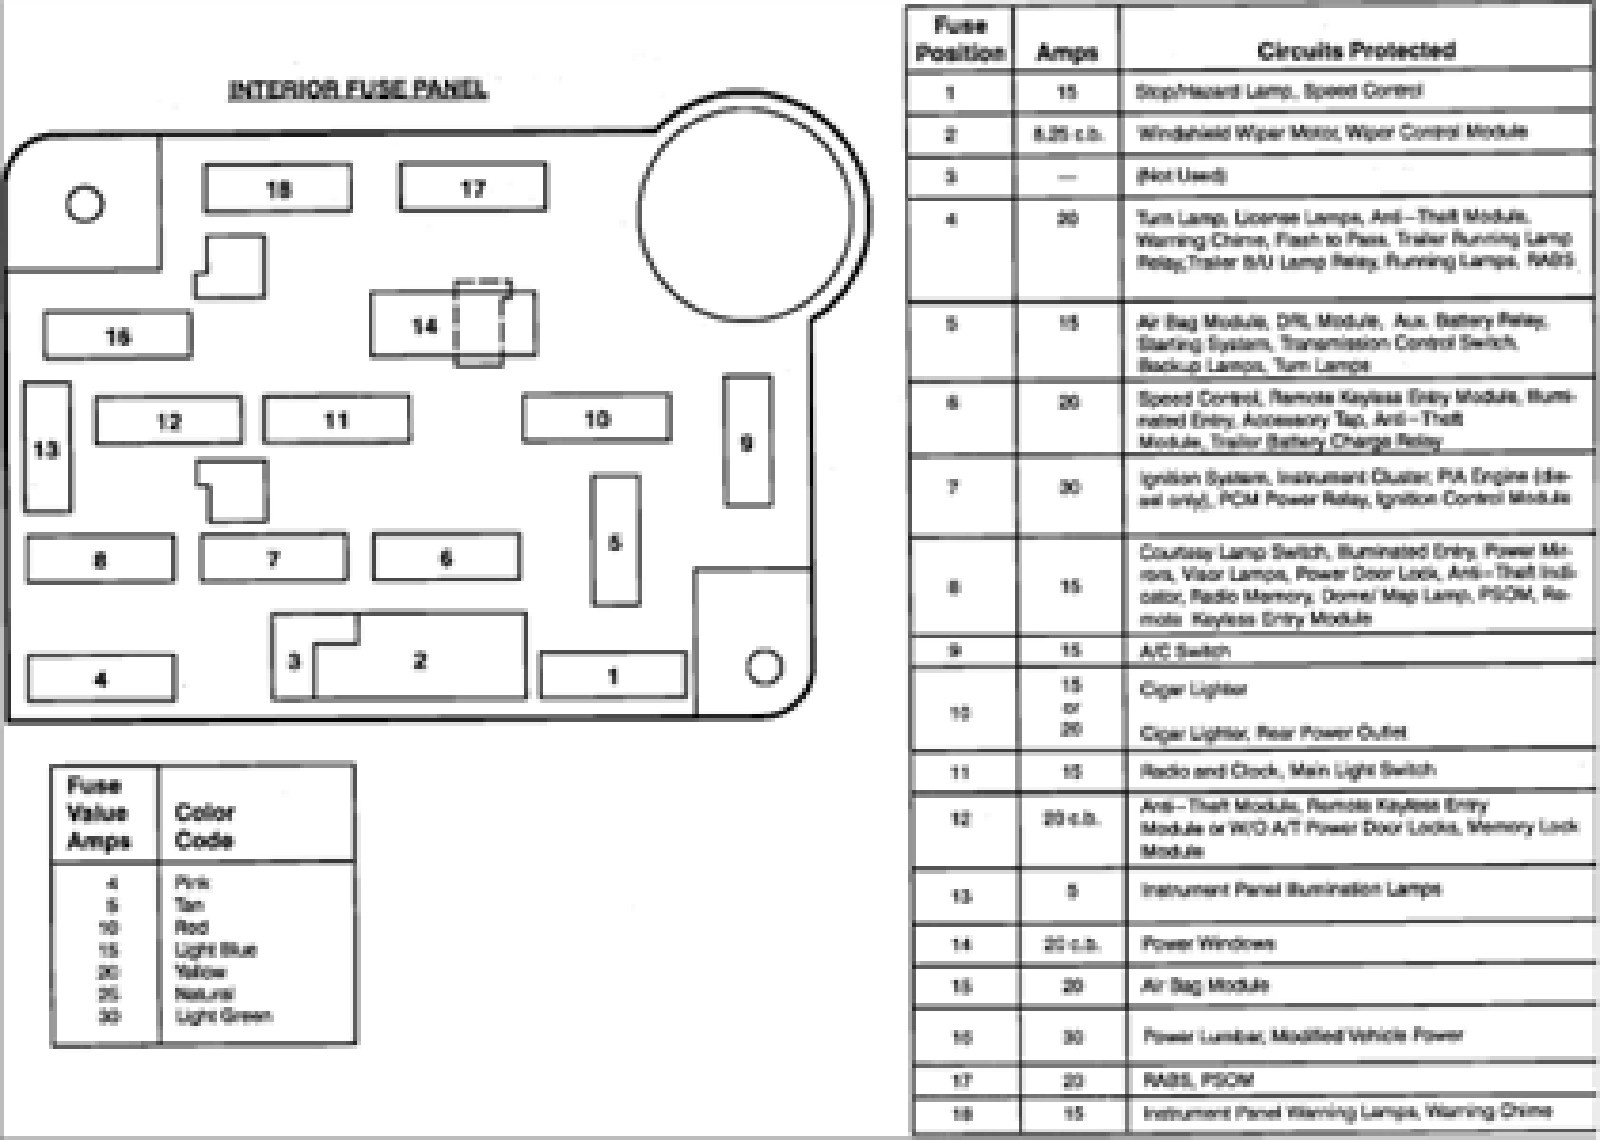 hight resolution of ford e150 fuse diagram wiring diagram blogs 06 ford explorer fuse diagram 1998 ford e150 fuse box diagram